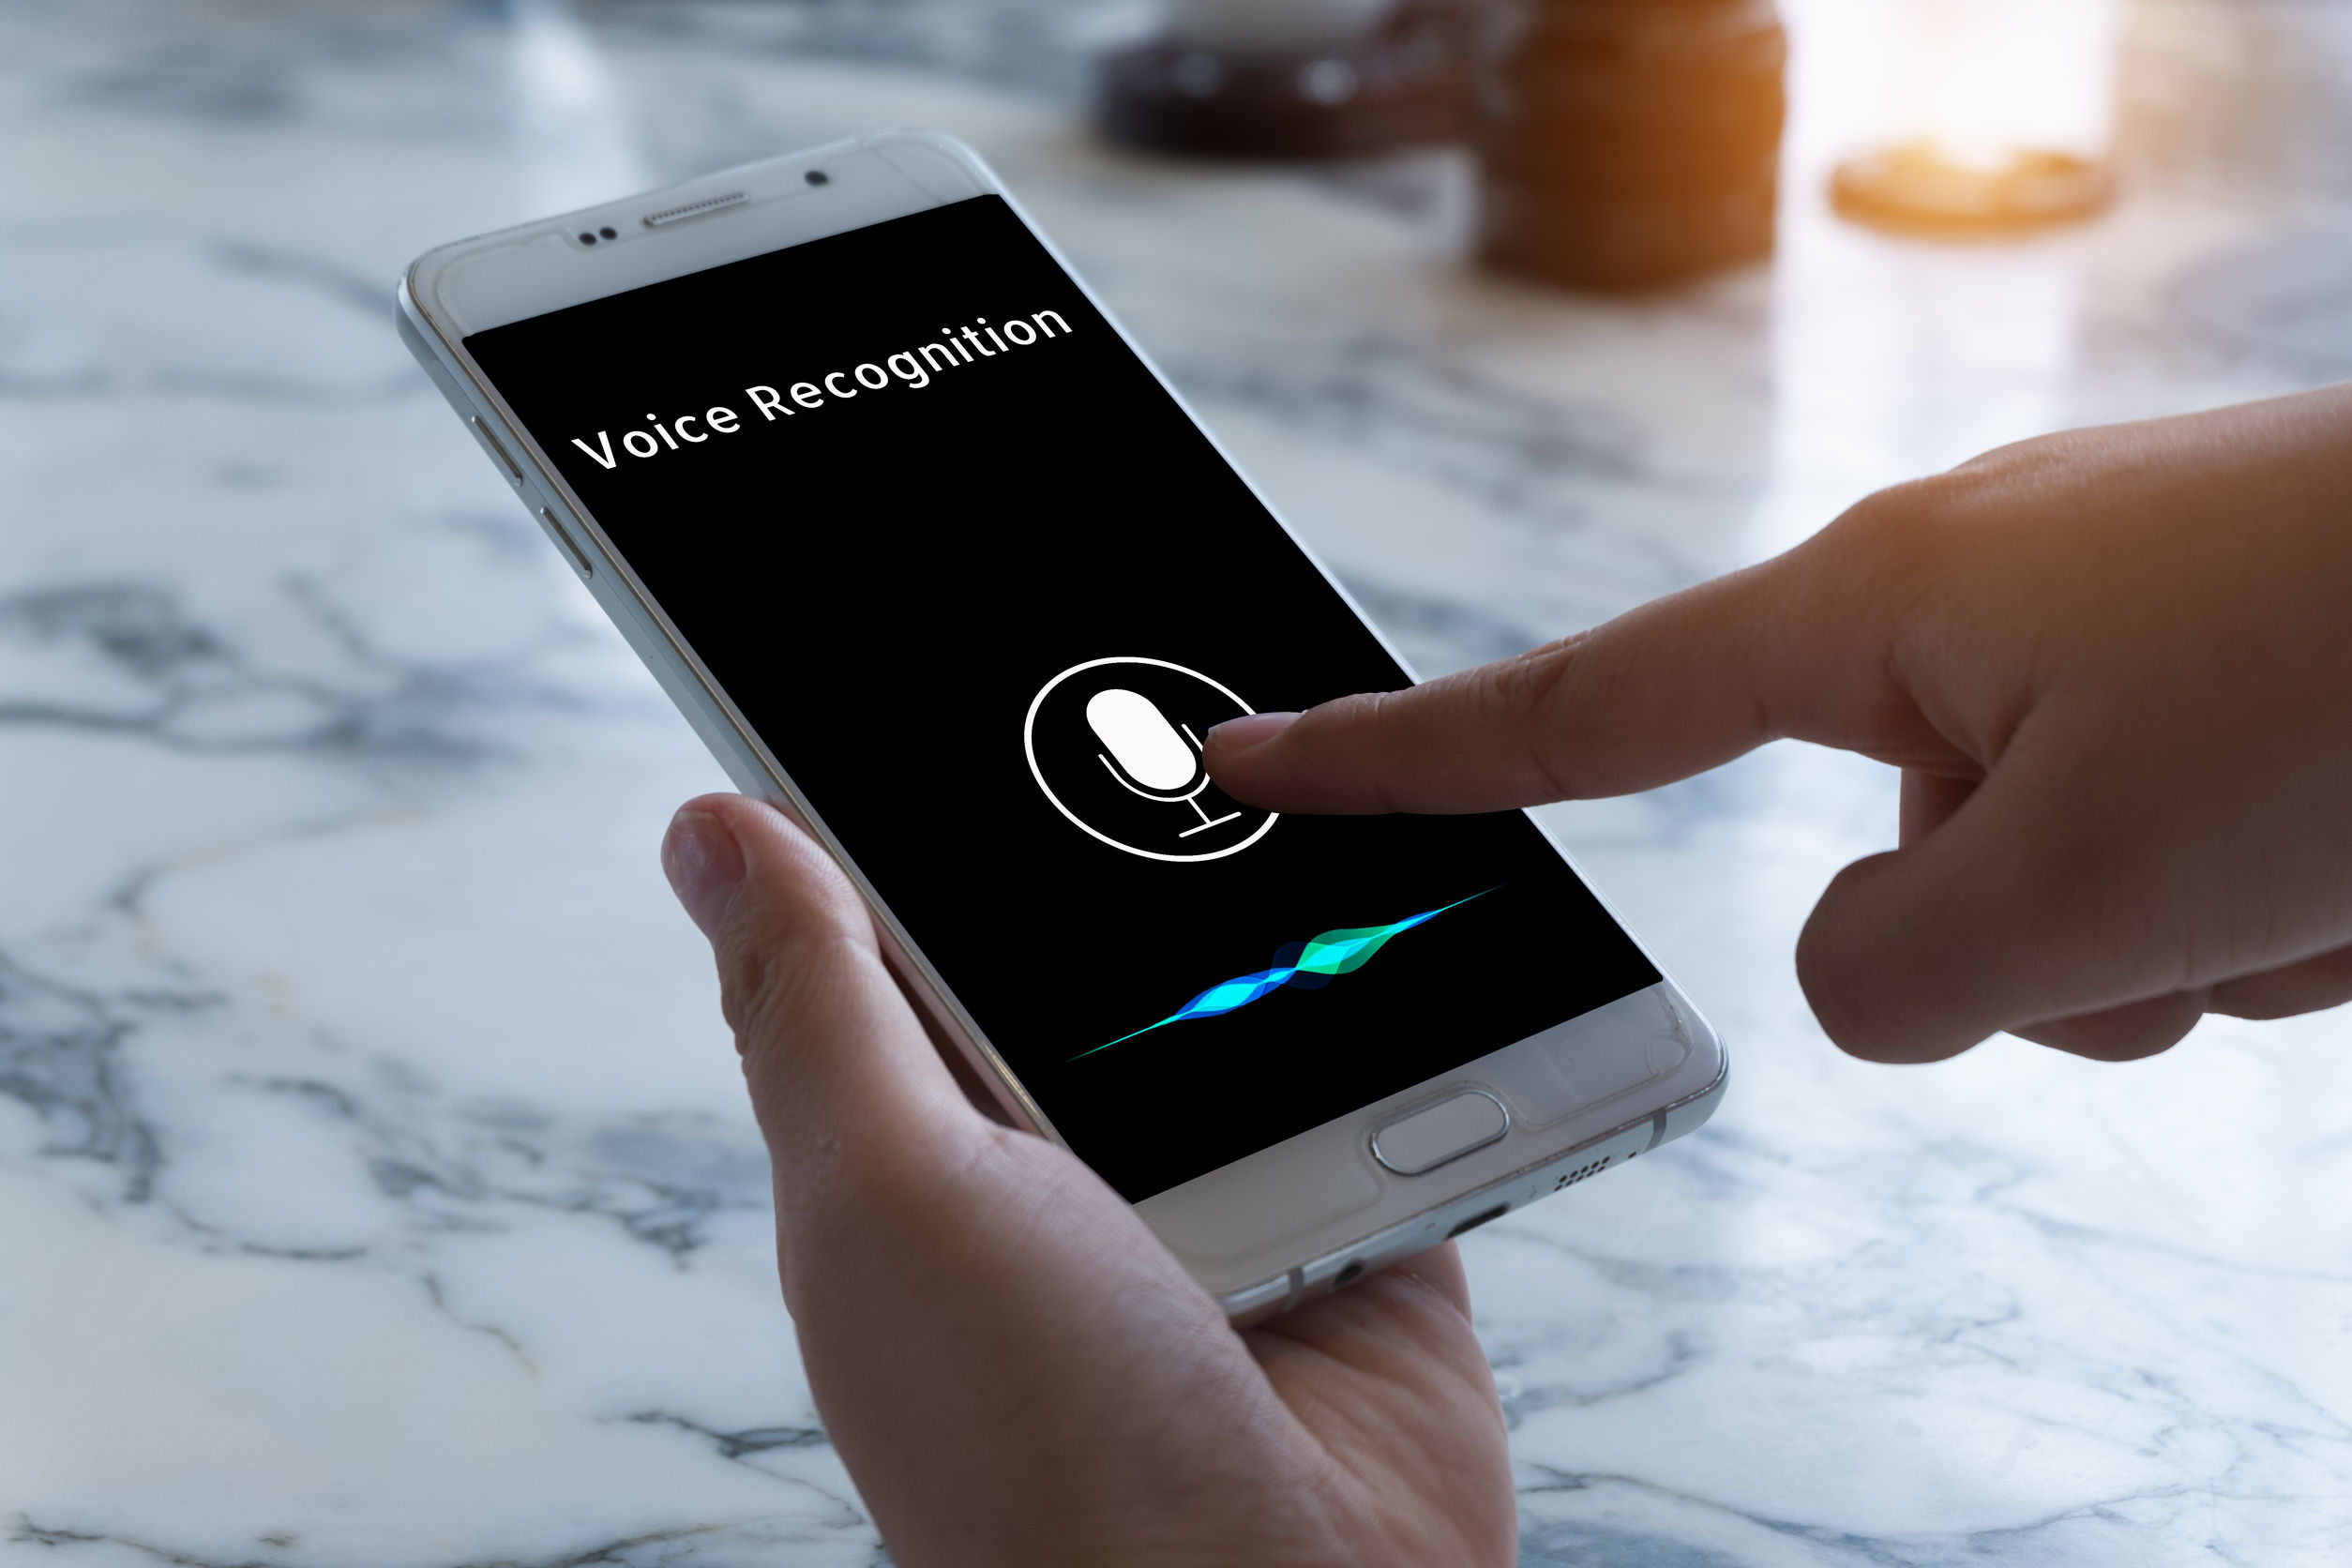 Voice recognition , speech detect and deep learning concept. Application on mobile phone screen.